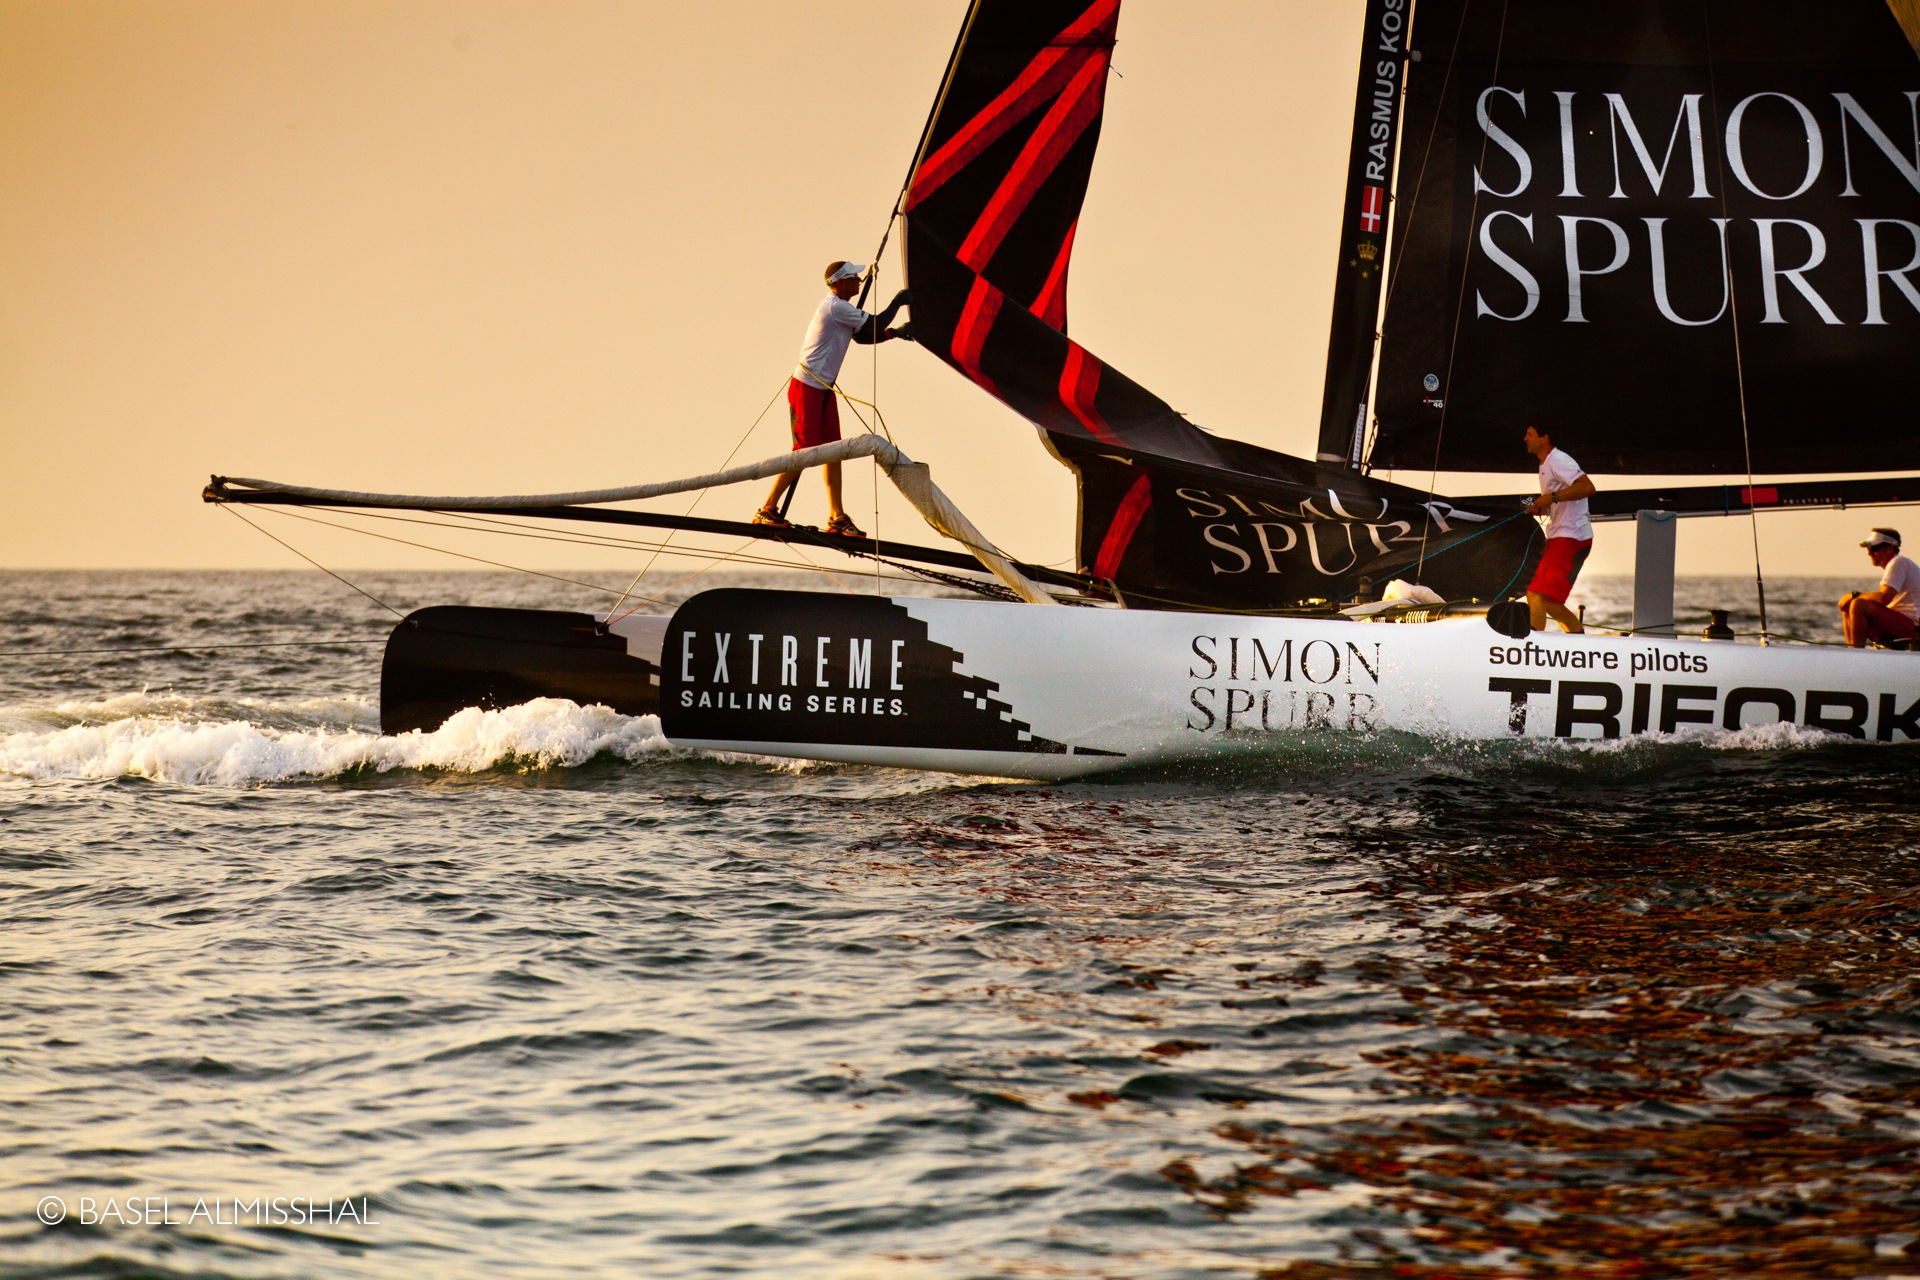 Extreme Sailing by Basel Almisshal